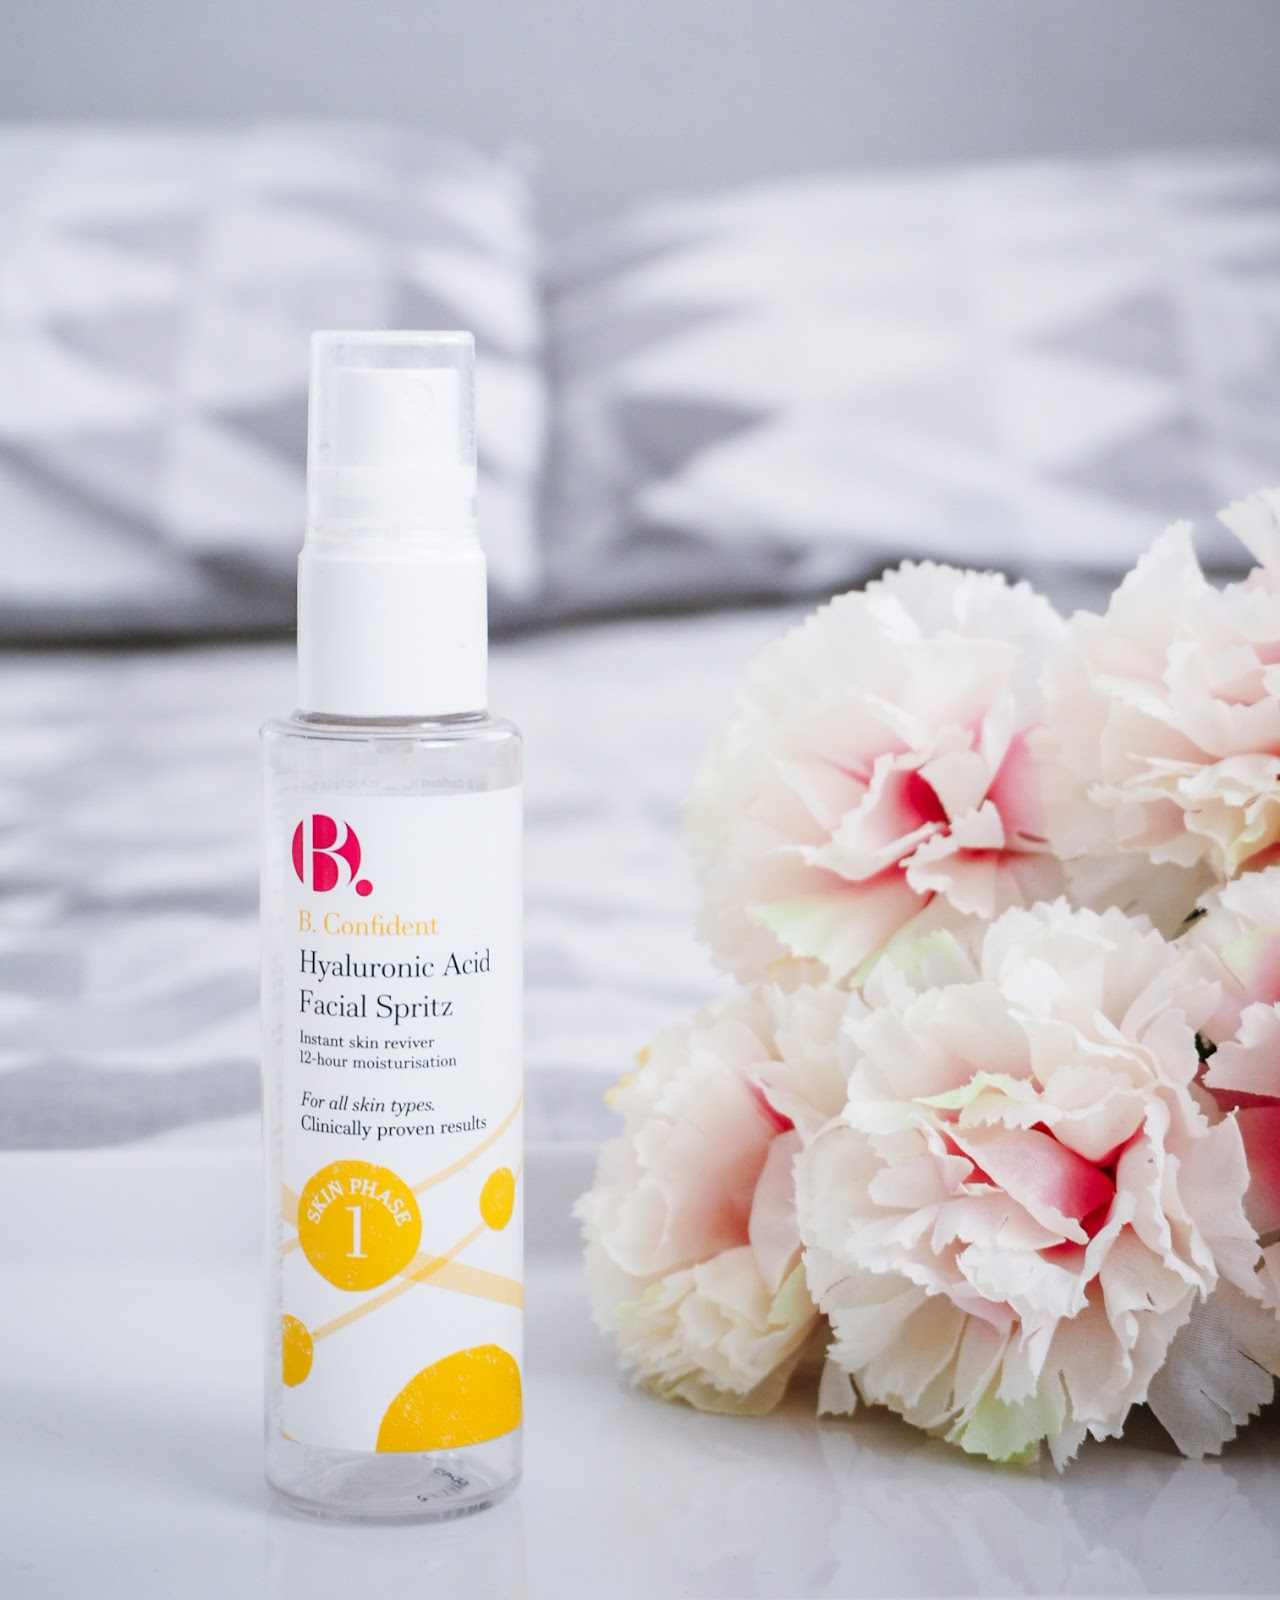 B. Hydrated Hyaluronic Acid Facial Spritz